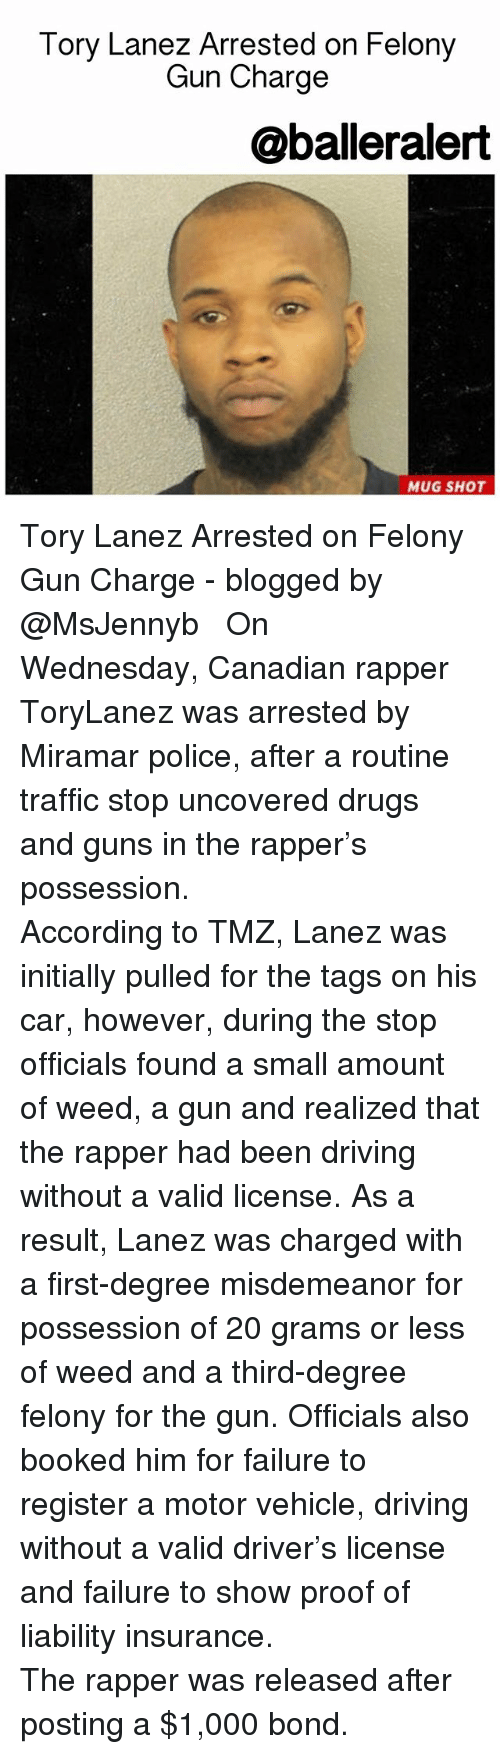 Tory Lanez: Tory Lanez Arrested on Felony  Gun Charge  @balleralert  MUG SHOT Tory Lanez Arrested on Felony Gun Charge - blogged by @MsJennyb ⠀⠀⠀⠀⠀⠀⠀⠀⠀ ⠀⠀⠀⠀⠀⠀⠀⠀⠀ On Wednesday, Canadian rapper ToryLanez was arrested by Miramar police, after a routine traffic stop uncovered drugs and guns in the rapper's possession. ⠀⠀⠀⠀⠀⠀⠀⠀⠀ ⠀⠀⠀⠀⠀⠀⠀⠀⠀ According to TMZ, Lanez was initially pulled for the tags on his car, however, during the stop officials found a small amount of weed, a gun and realized that the rapper had been driving without a valid license. As a result, Lanez was charged with a first-degree misdemeanor for possession of 20 grams or less of weed and a third-degree felony for the gun. Officials also booked him for failure to register a motor vehicle, driving without a valid driver's license and failure to show proof of liability insurance. ⠀⠀⠀⠀⠀⠀⠀⠀⠀ ⠀⠀⠀⠀⠀⠀⠀⠀⠀ The rapper was released after posting a $1,000 bond.